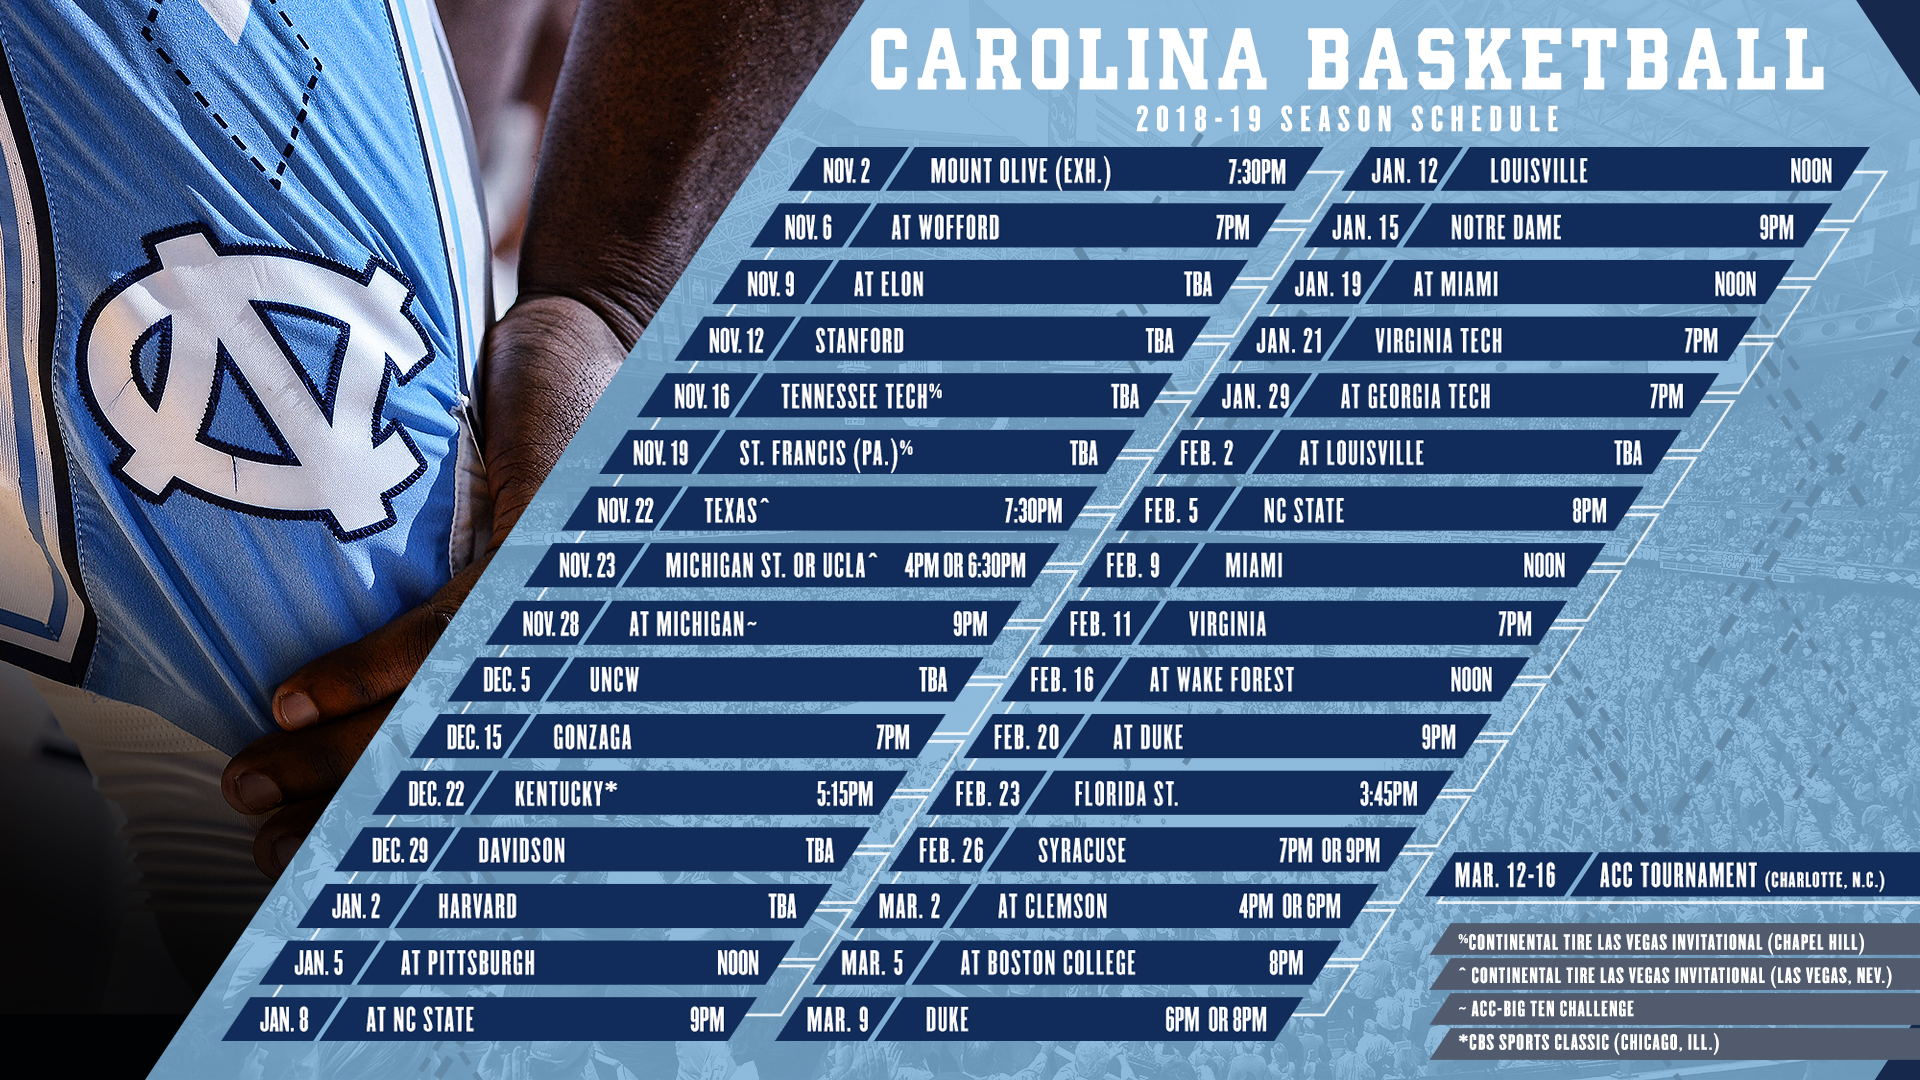 Tar Heels Face Another Challenging Schedule In 2018-19